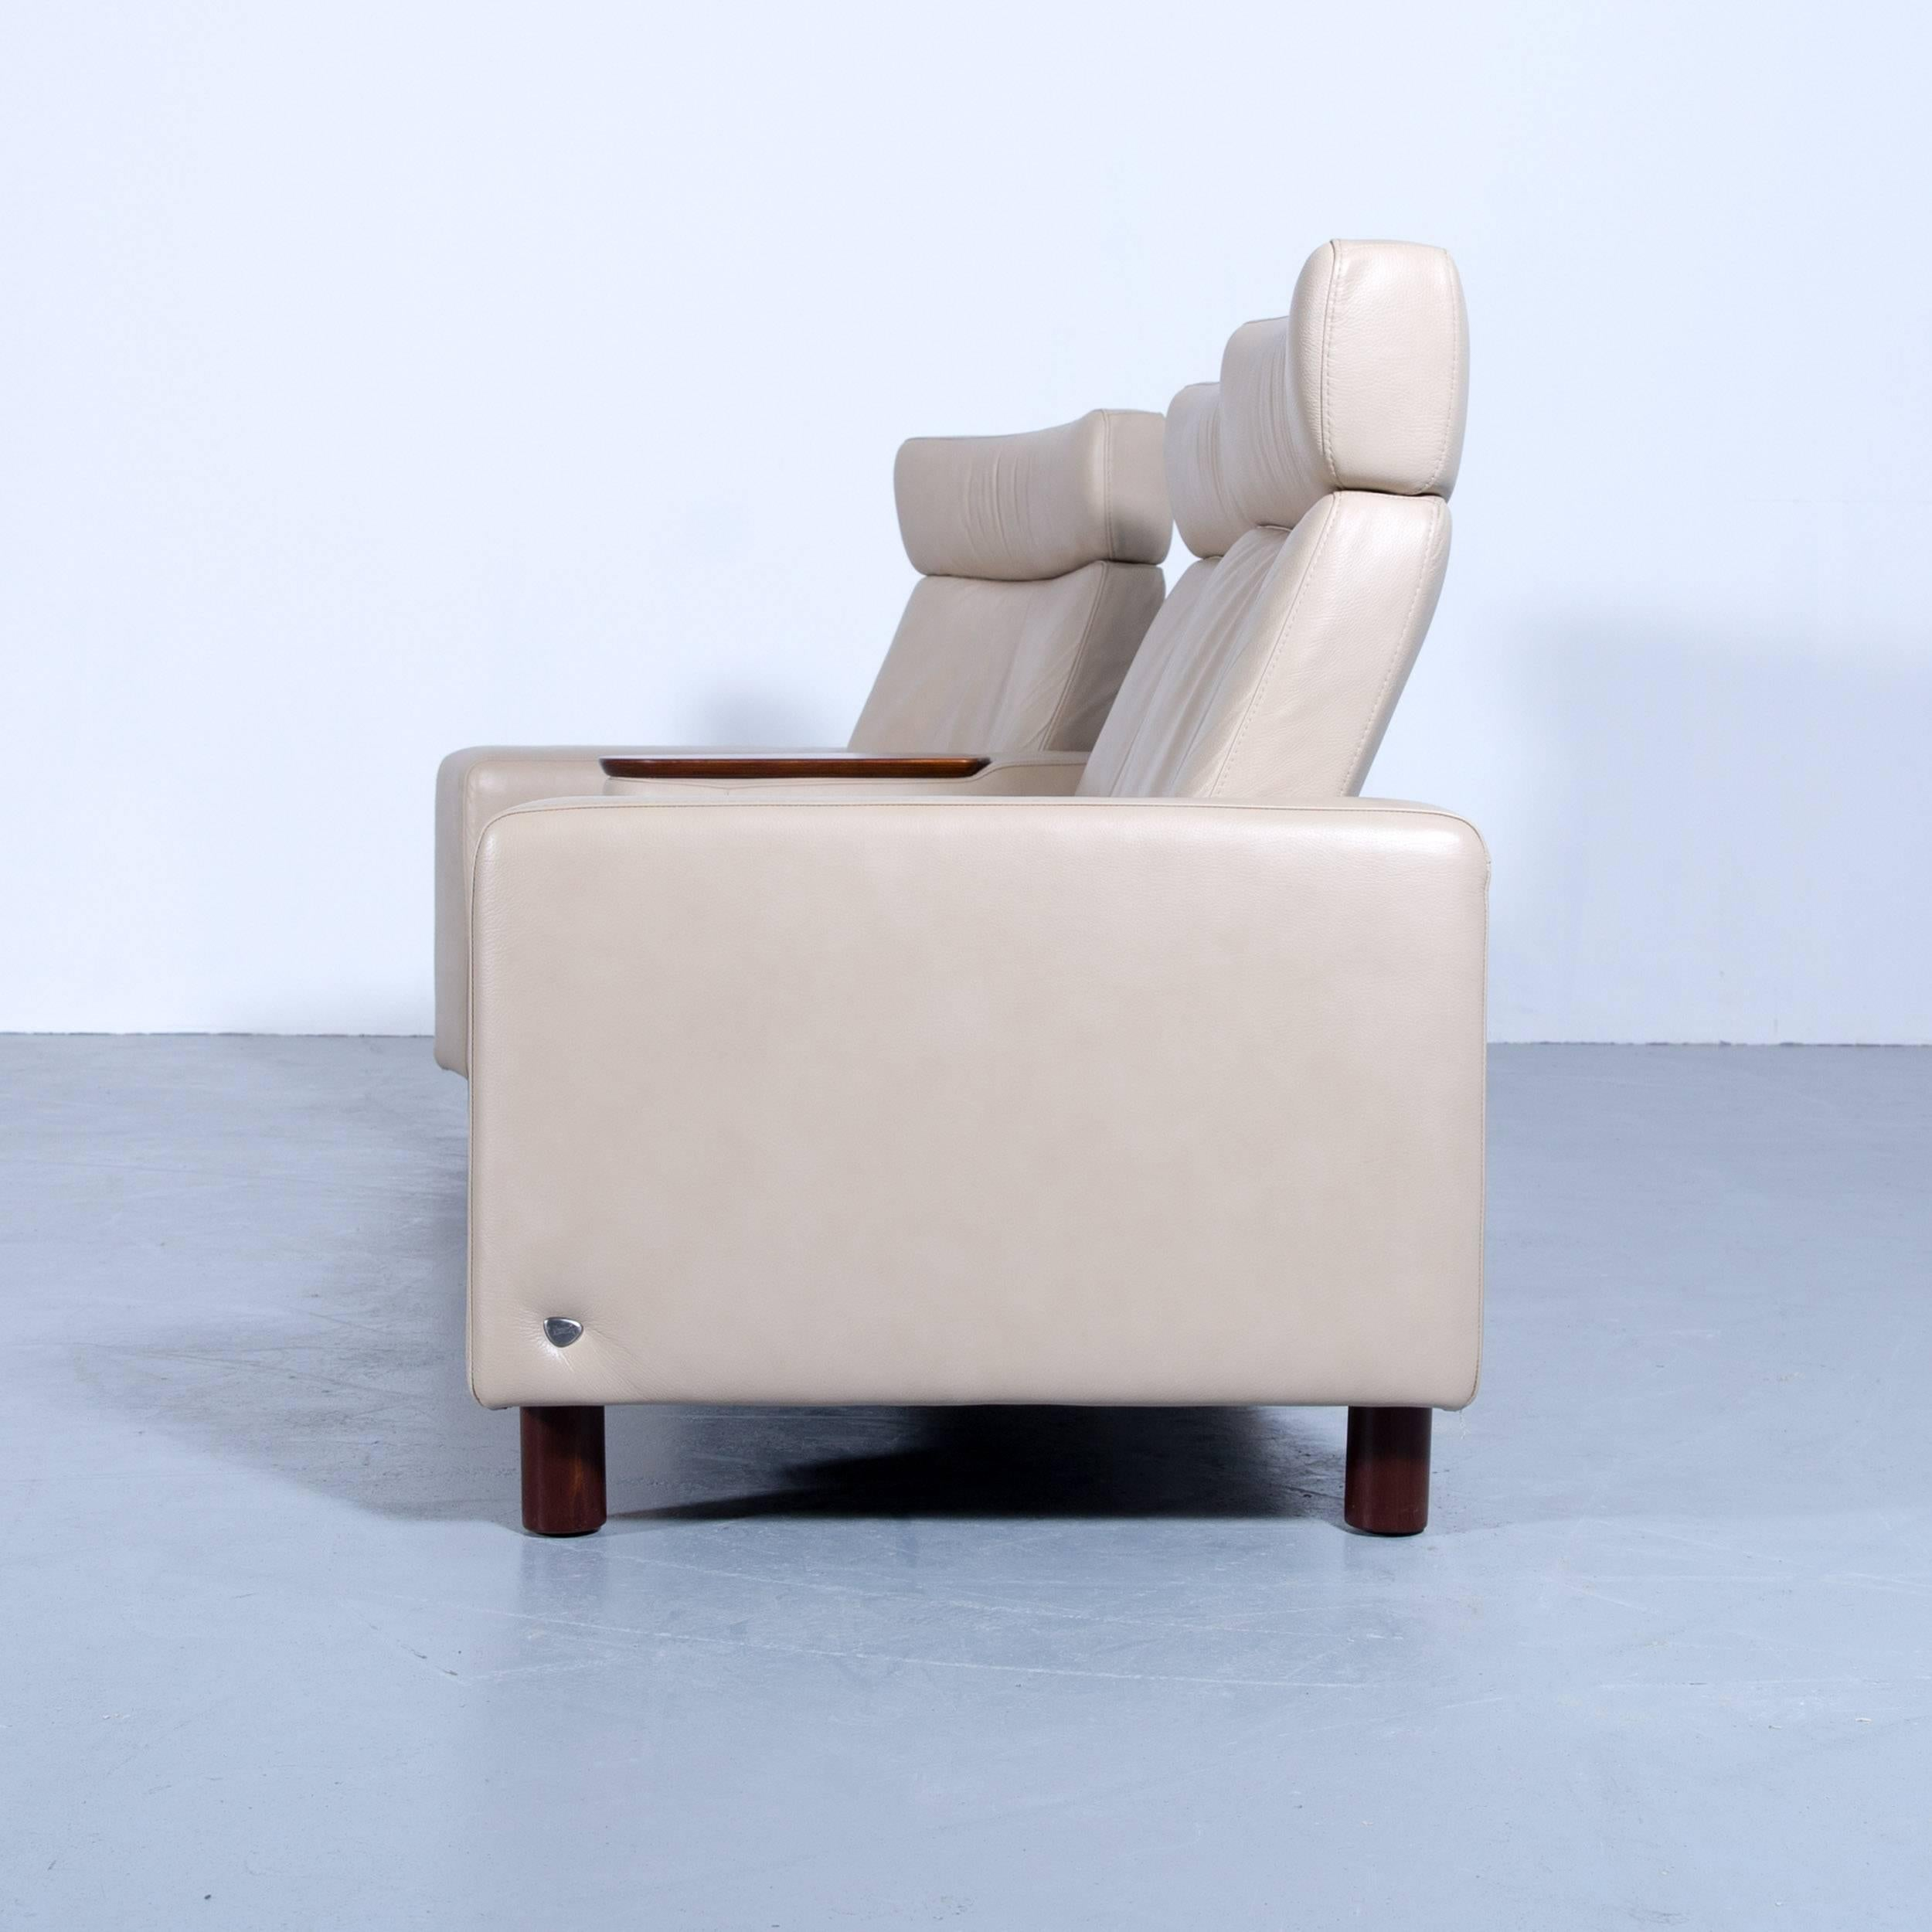 Stressless Sessel Funktion Ekornes Stressless Space Relax Sofa Beige Crème Leather Tv Recliner Three Seat